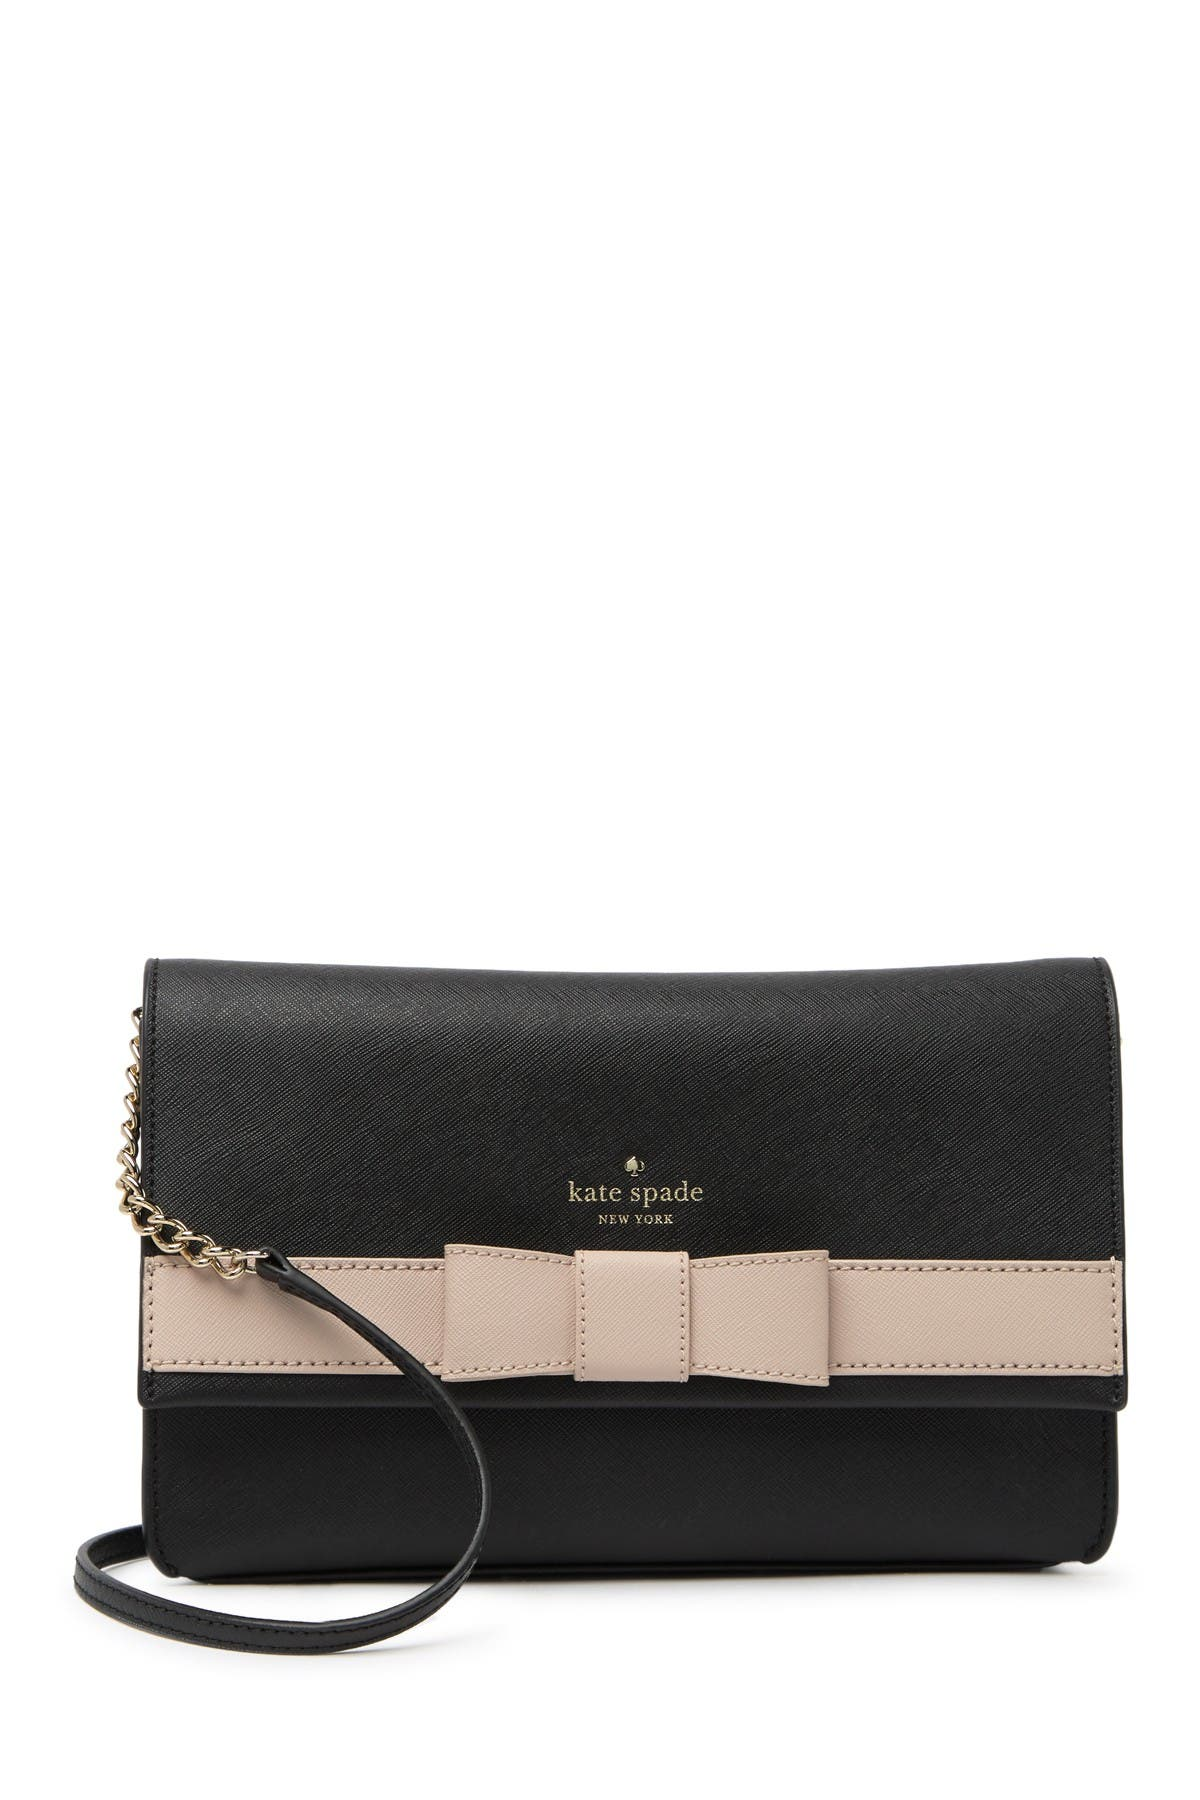 Image of kate spade new york leather veronique crossbody bag